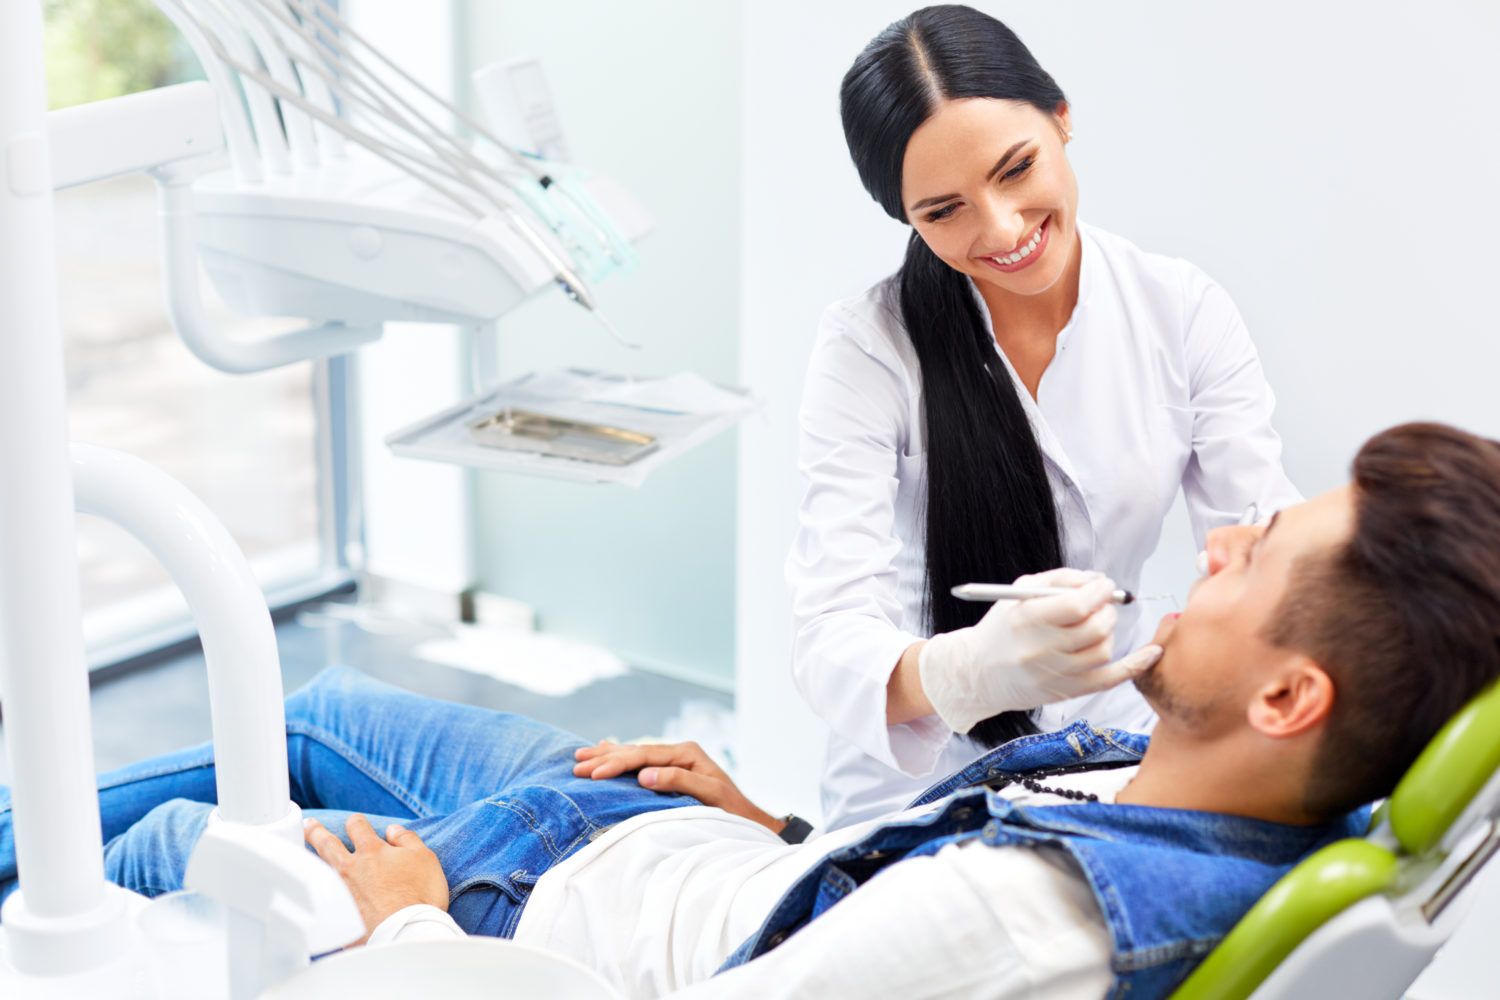 What Are The Benefits Of Visiting The Dentist Regularly?